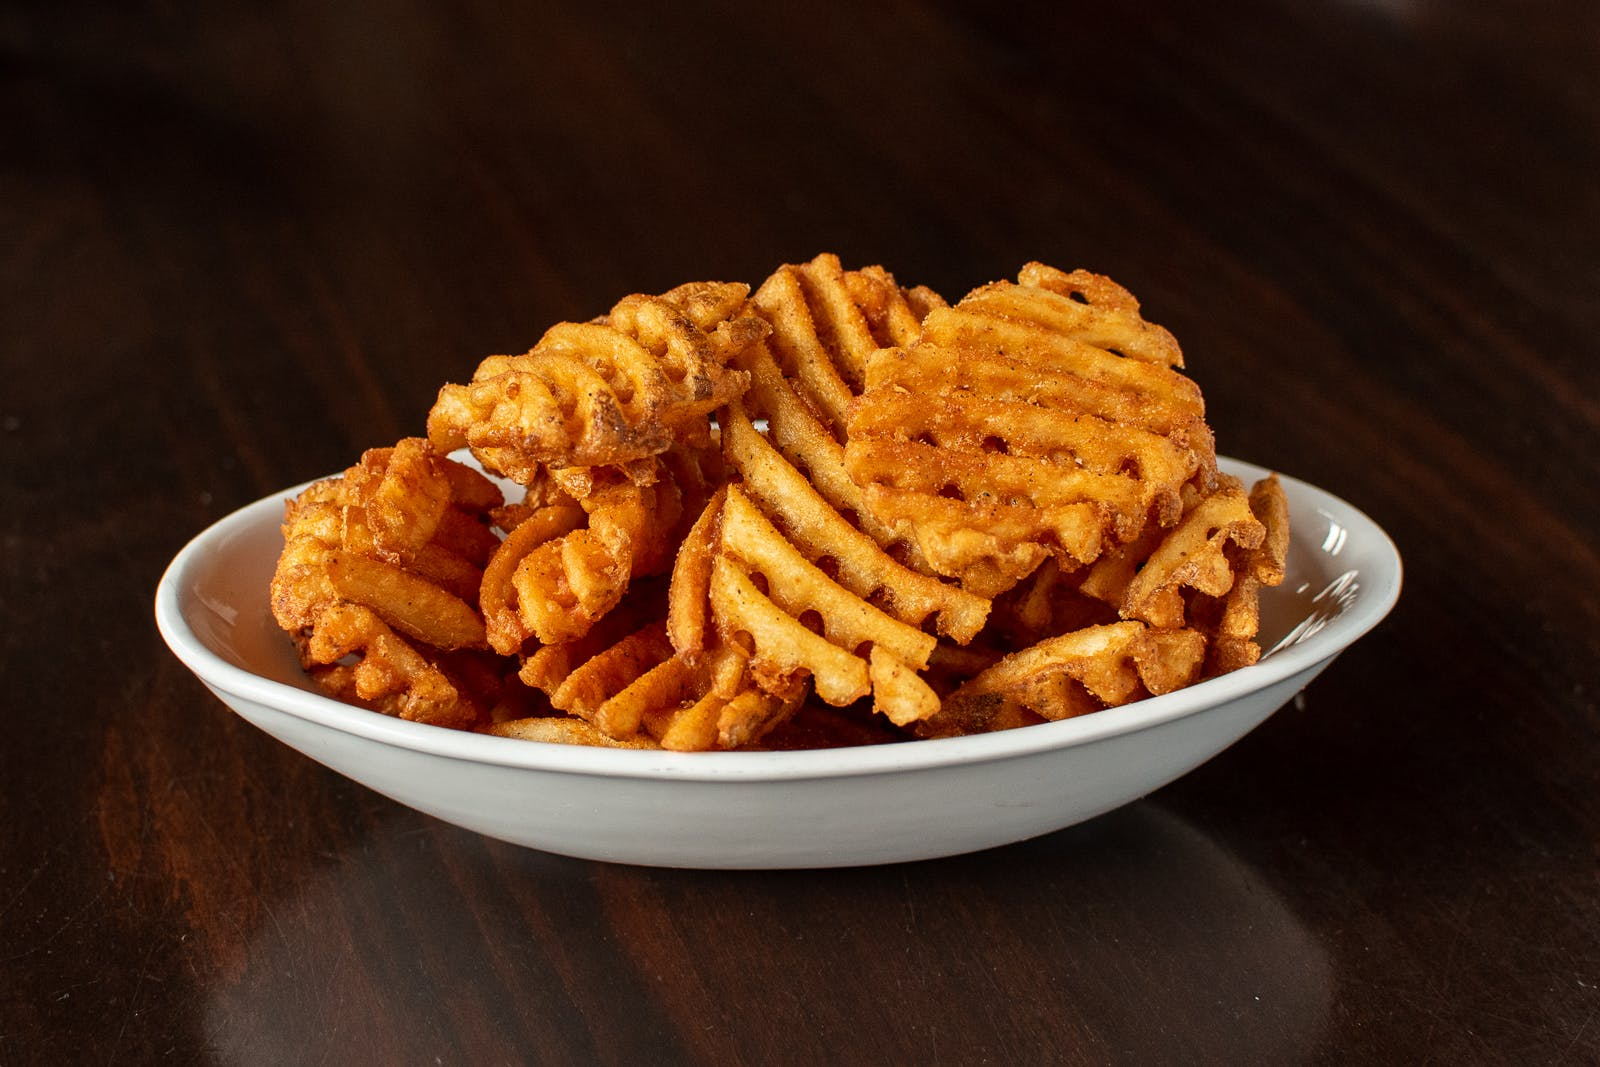 Spicy Waffle Fries from Midcoast Wings - University Ave in Cedar Falls, IA